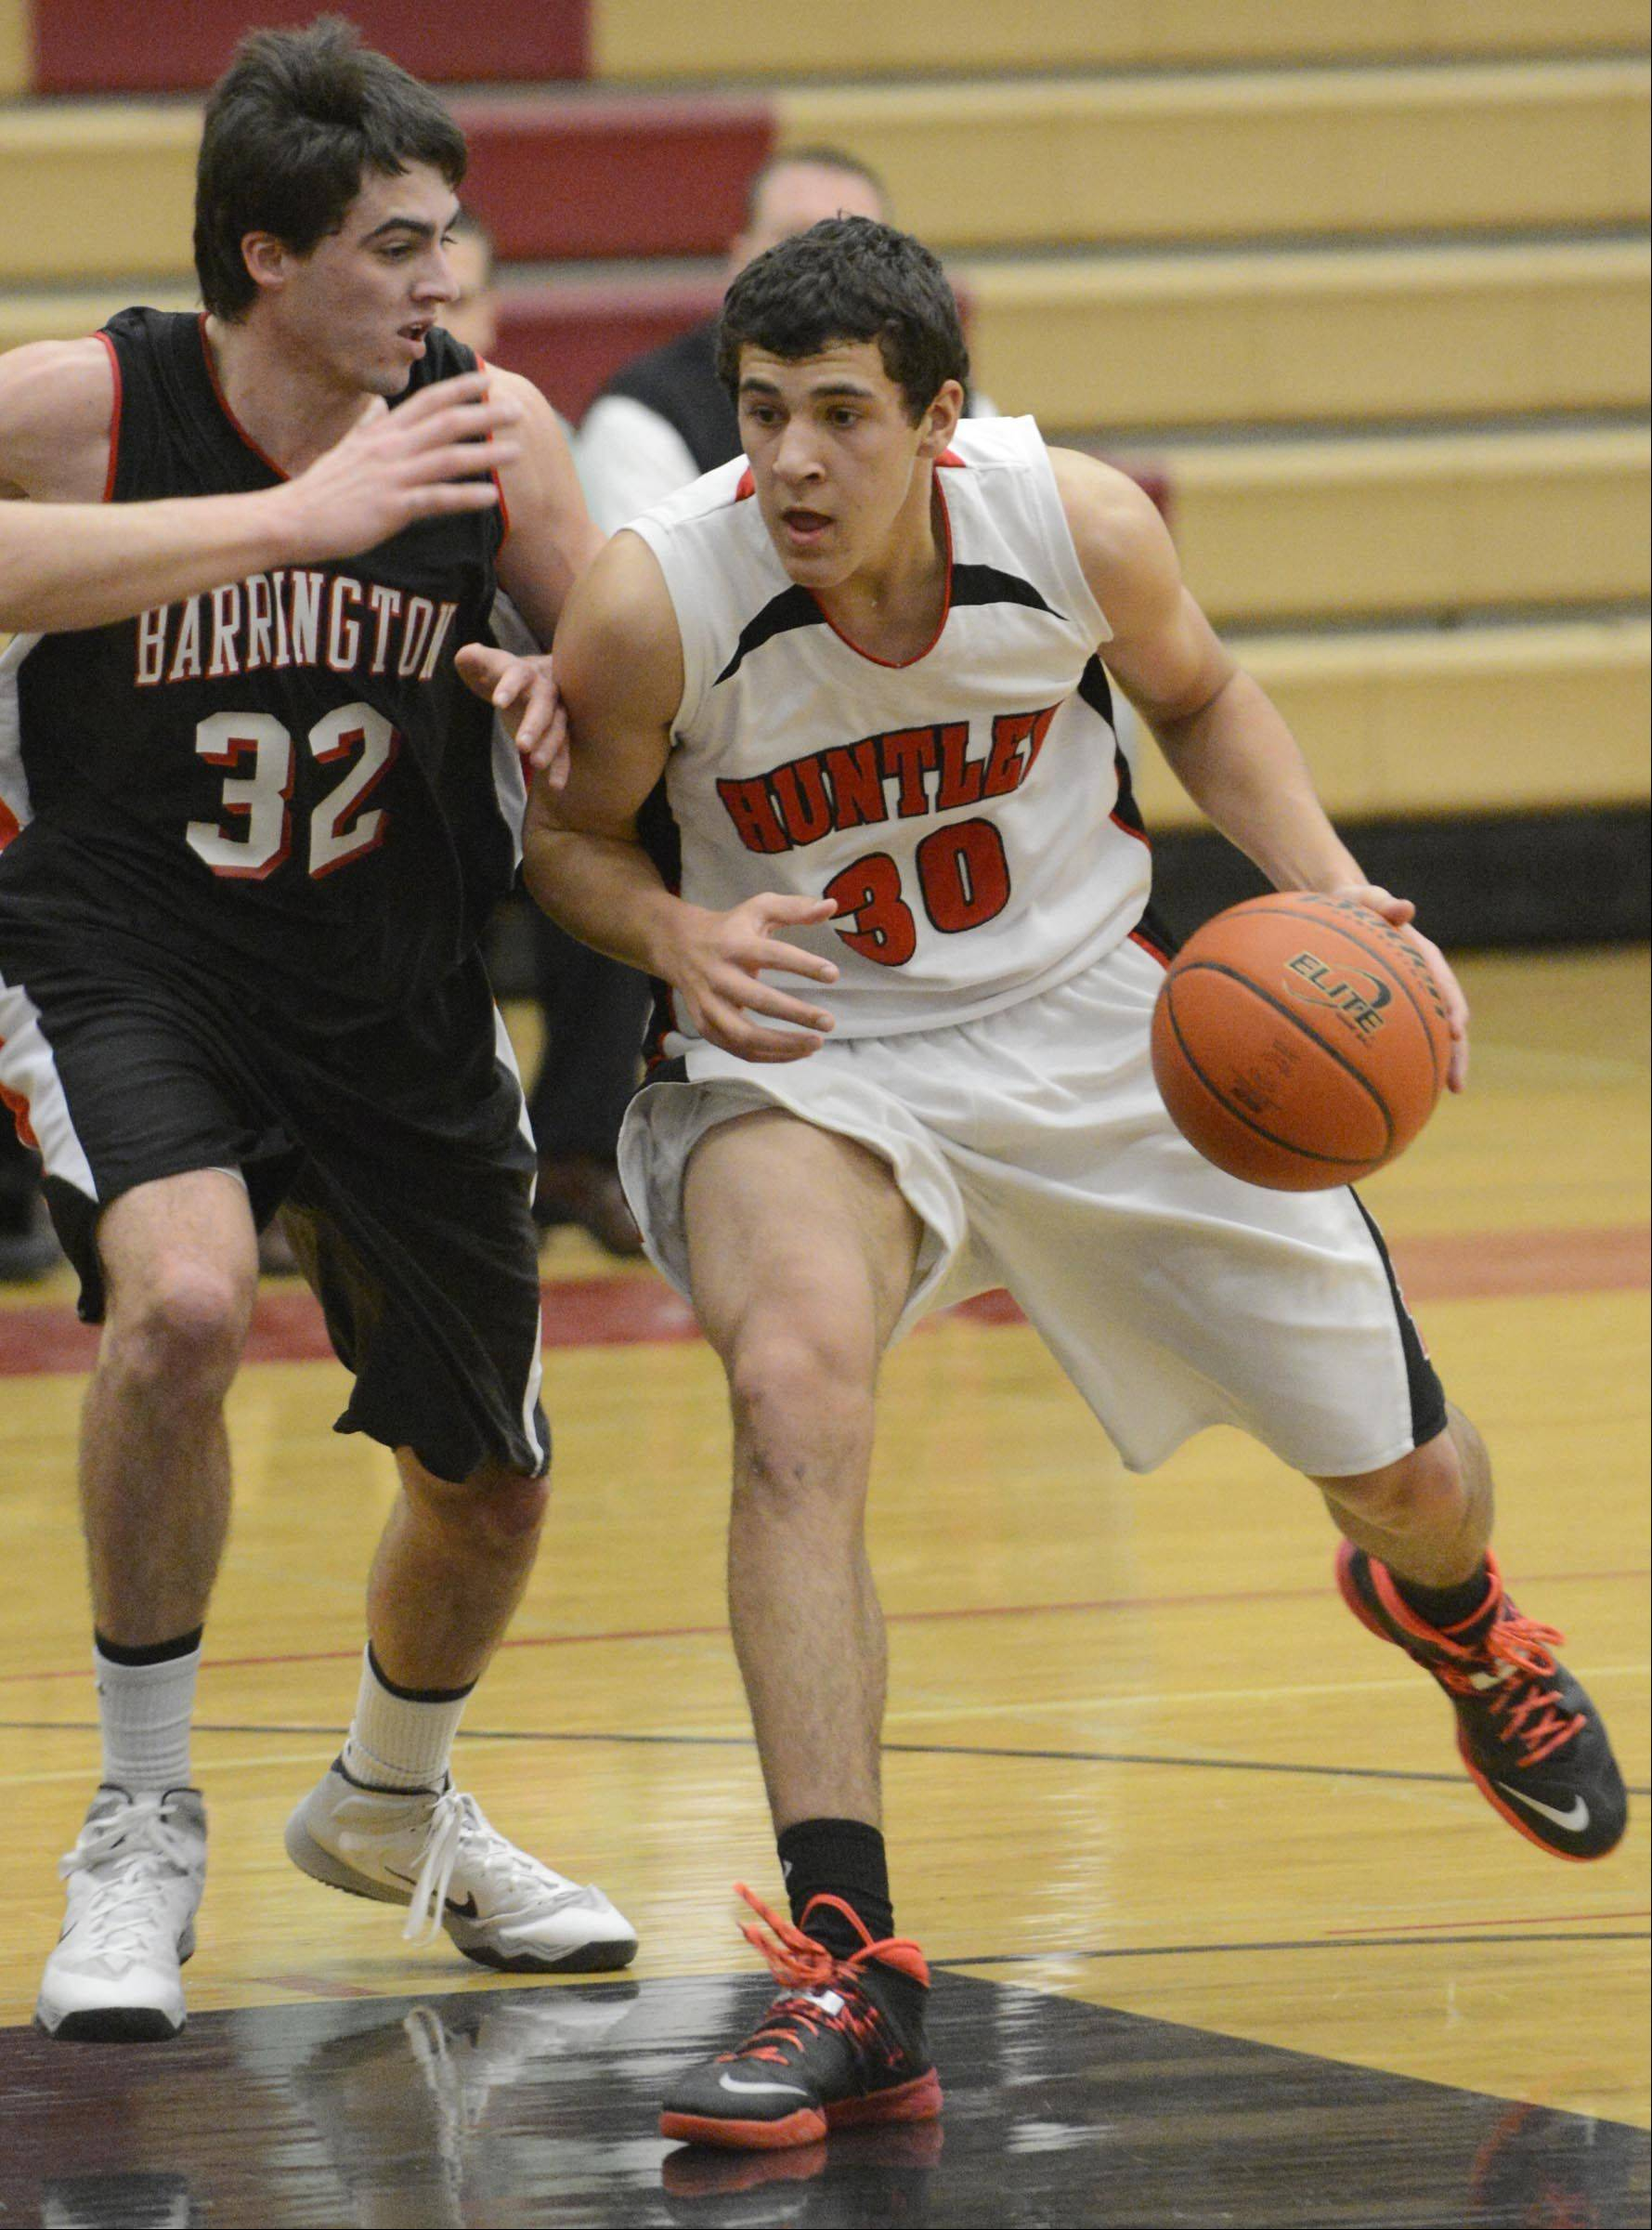 Images from the Barrington at Huntley boys basketball game Tuesday, February 4, 2014 in Huntley.